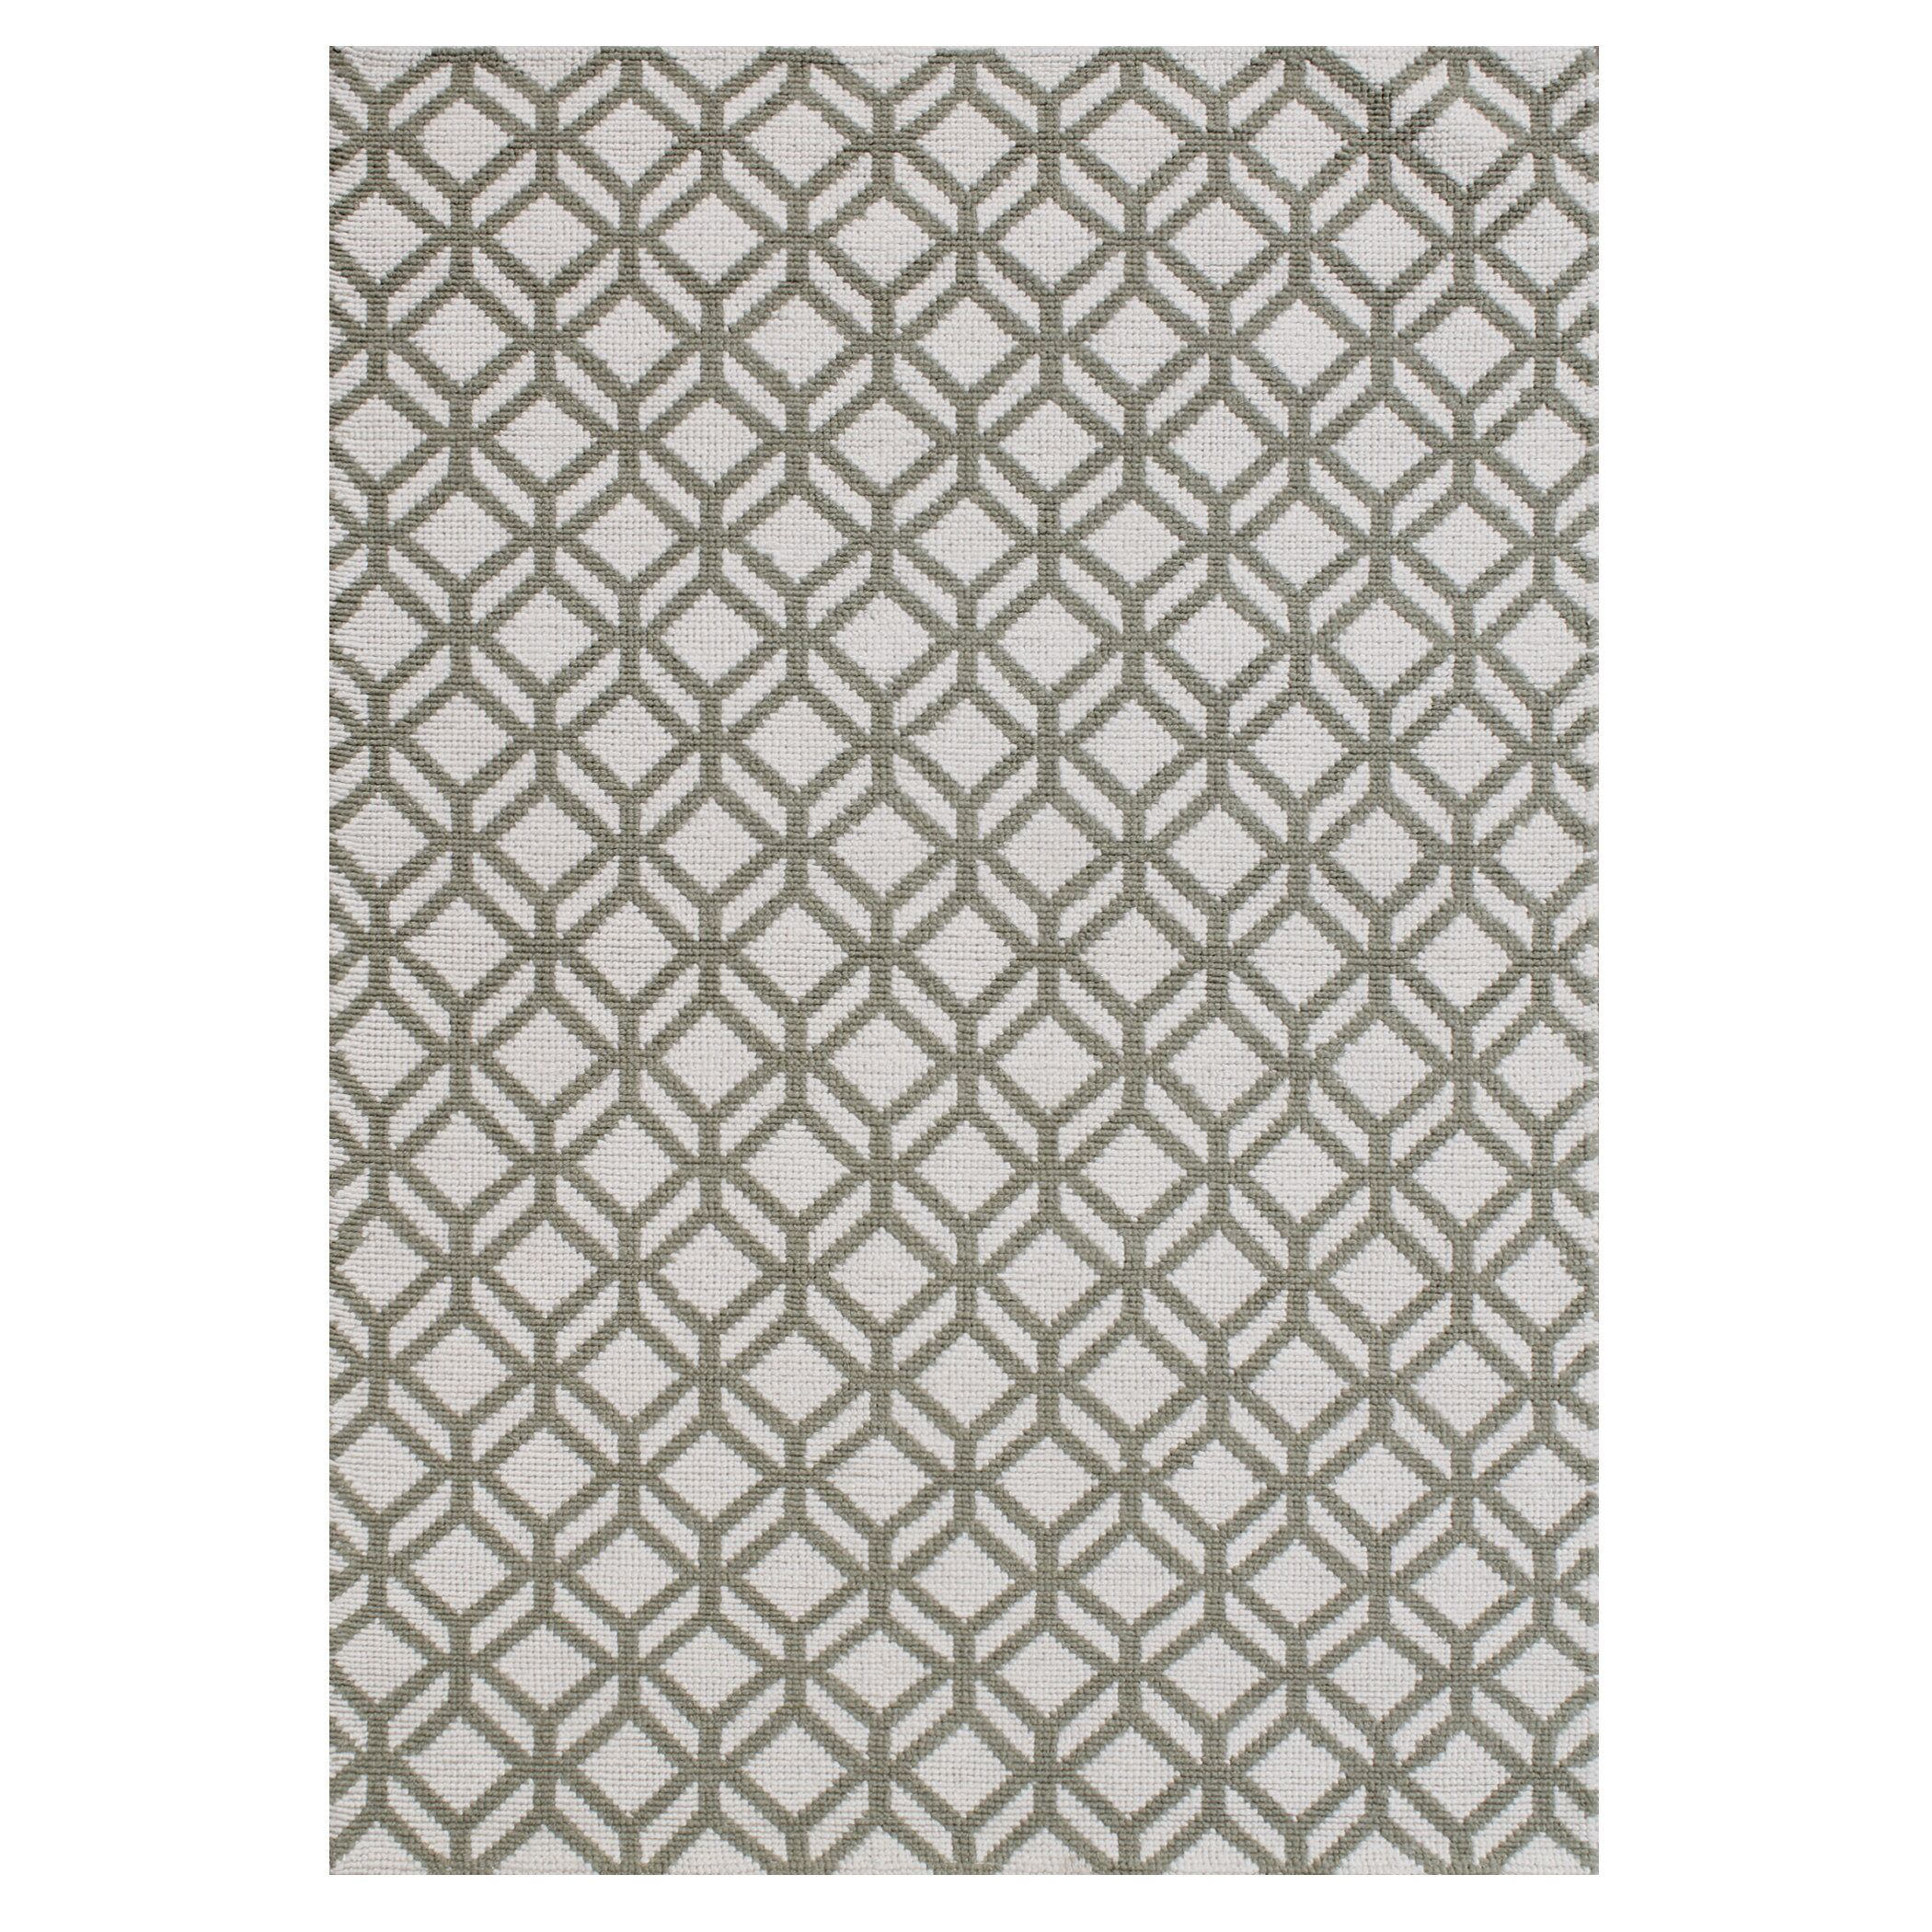 Lexington Avenue Facet Hand Knotted Wool Ivory/Green Area Rug Rug Size: Rectangle 7'6